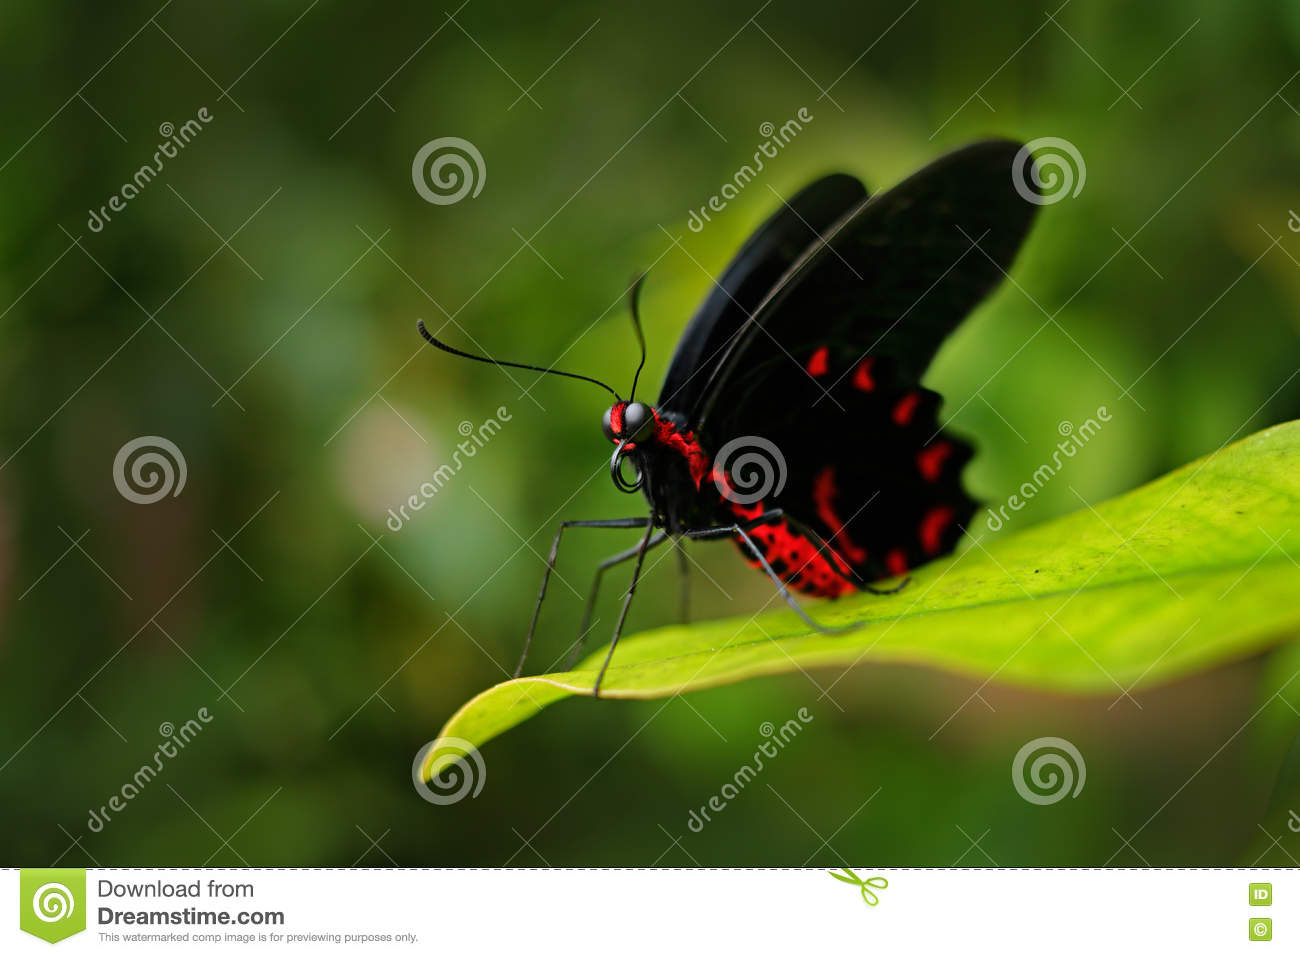 Download Beautiful Black And Red Poison Butterfly, Antrophaneura Semperi, In The Nature Green Forest Habitat, Wildlife, Indonesia. Insect I Stock Image - Image of indonesia, antrophaneura: 75943061